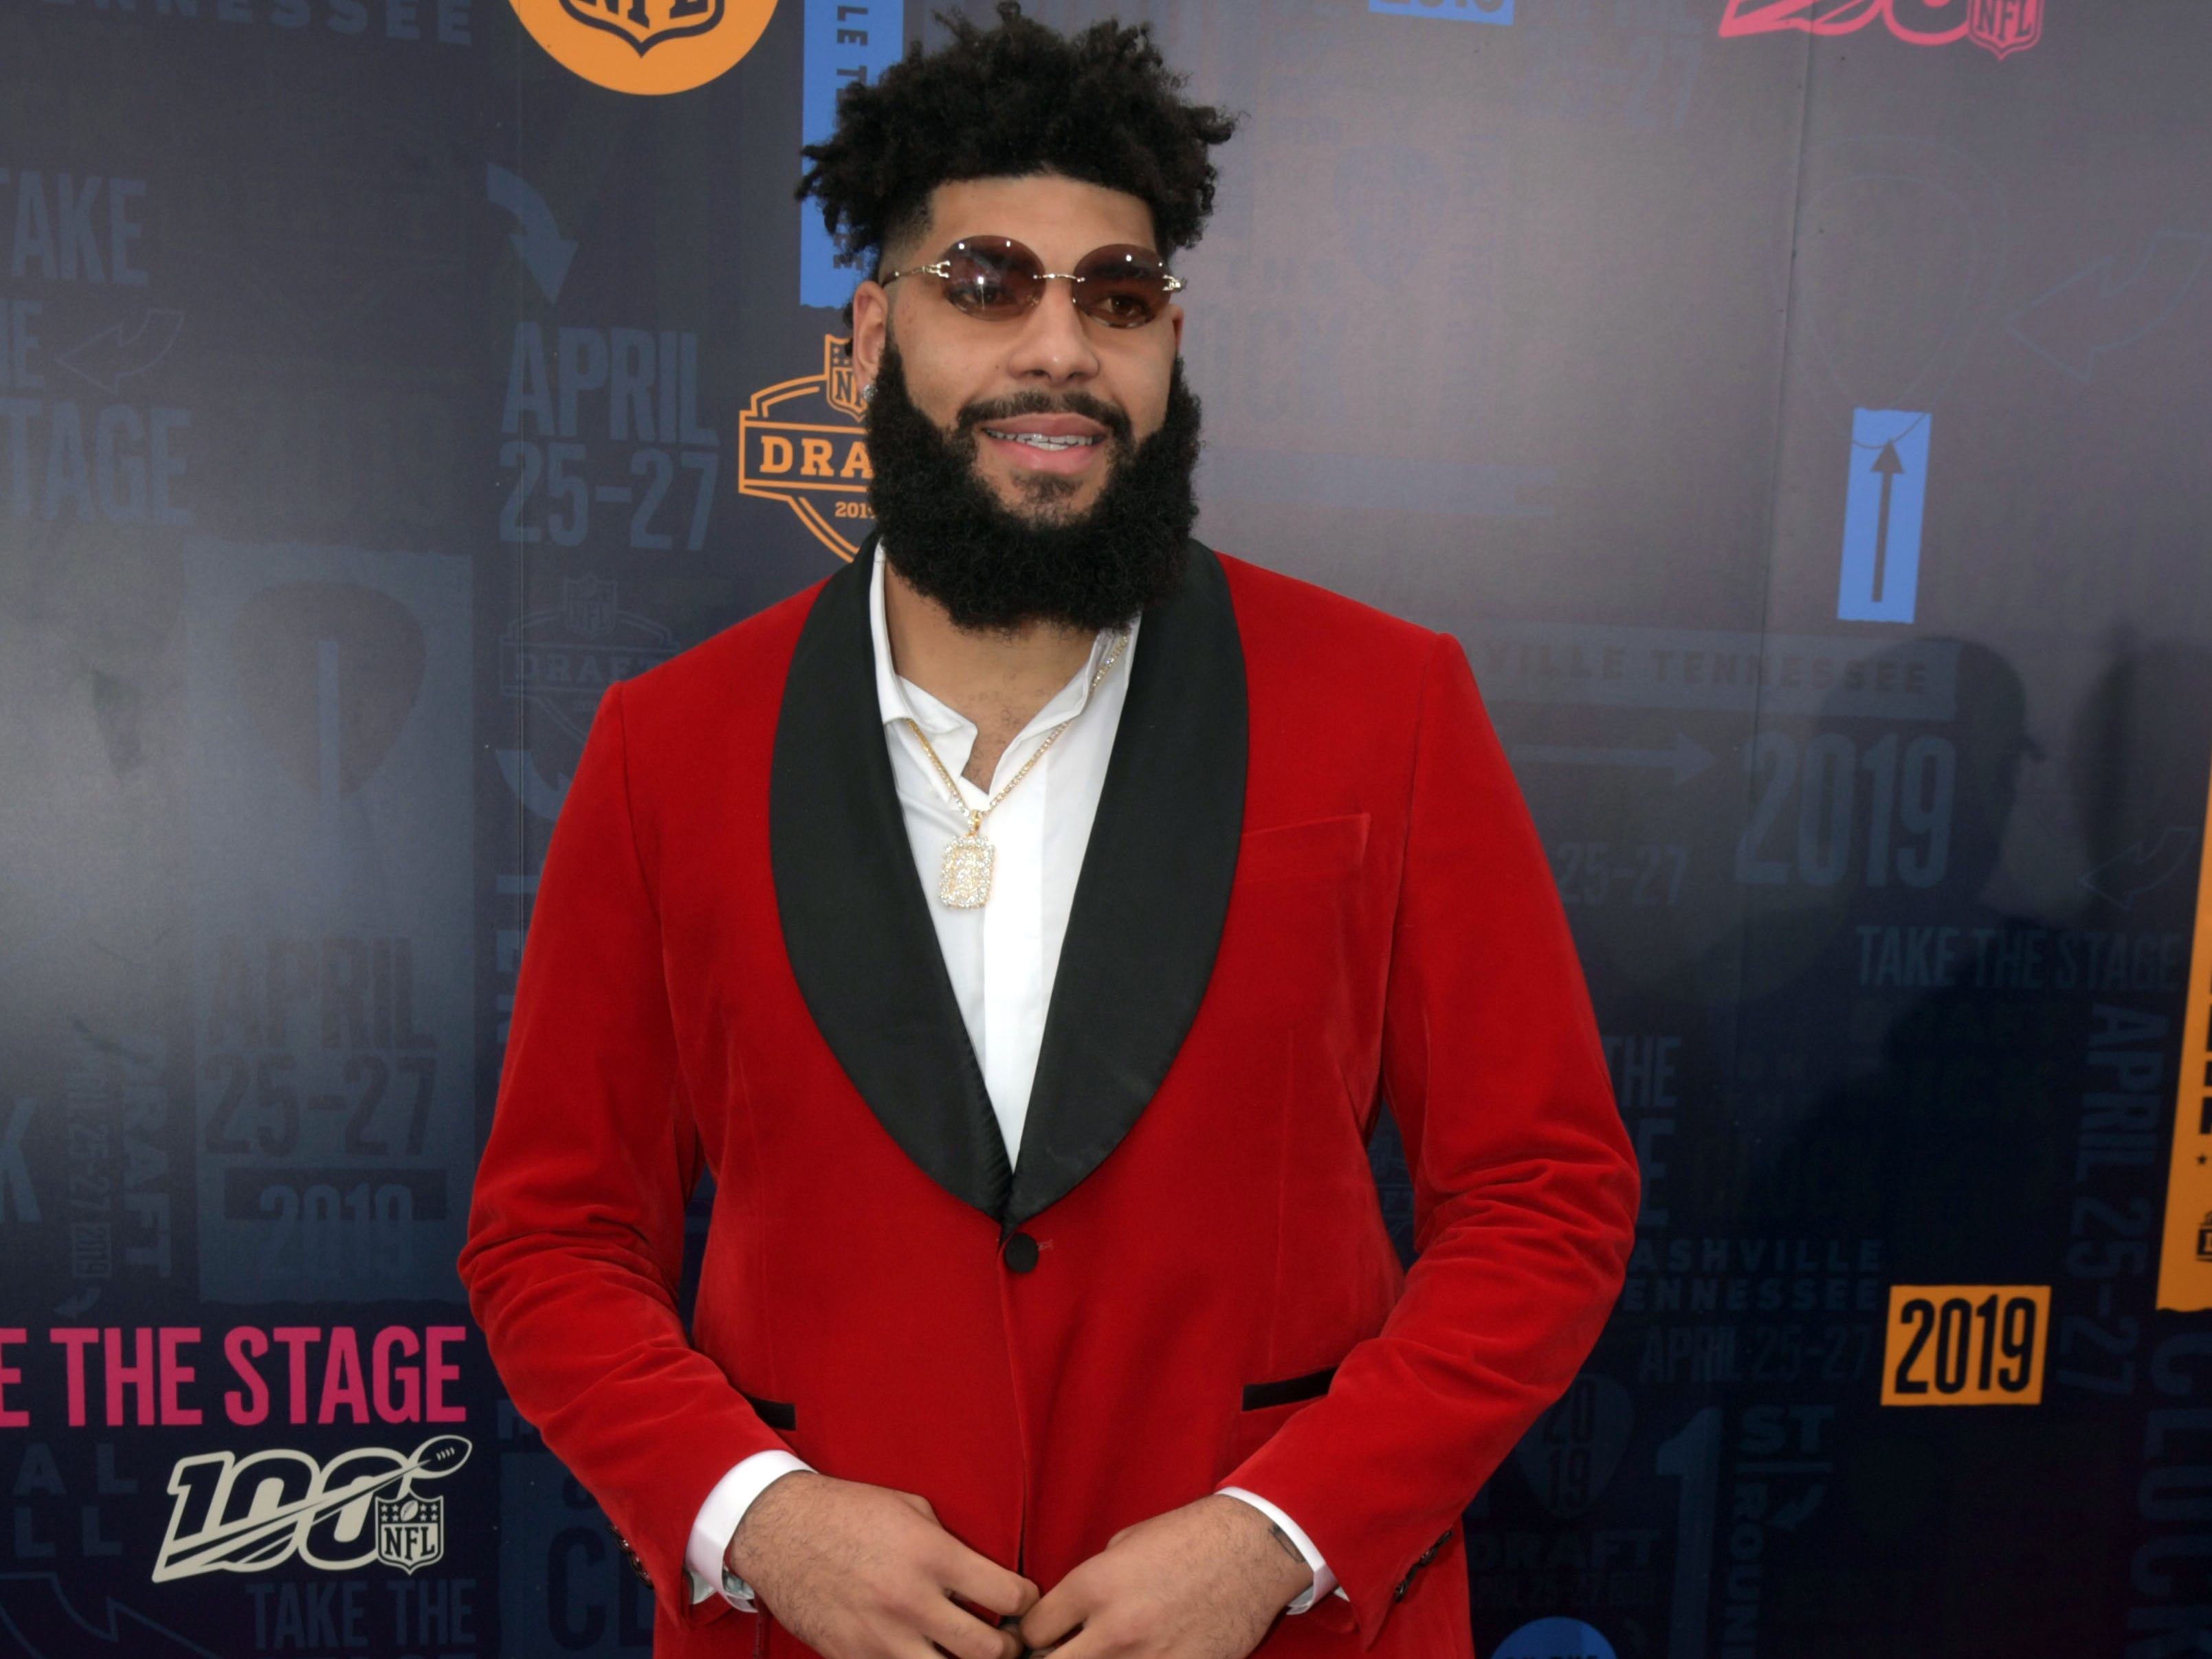 Apr 25, 2019; Nashville, TN, USA; Cody Ford (Oklahoma) on the red carpet prior to the first round of the 2019 NFL Draft in Downtown Nashville.